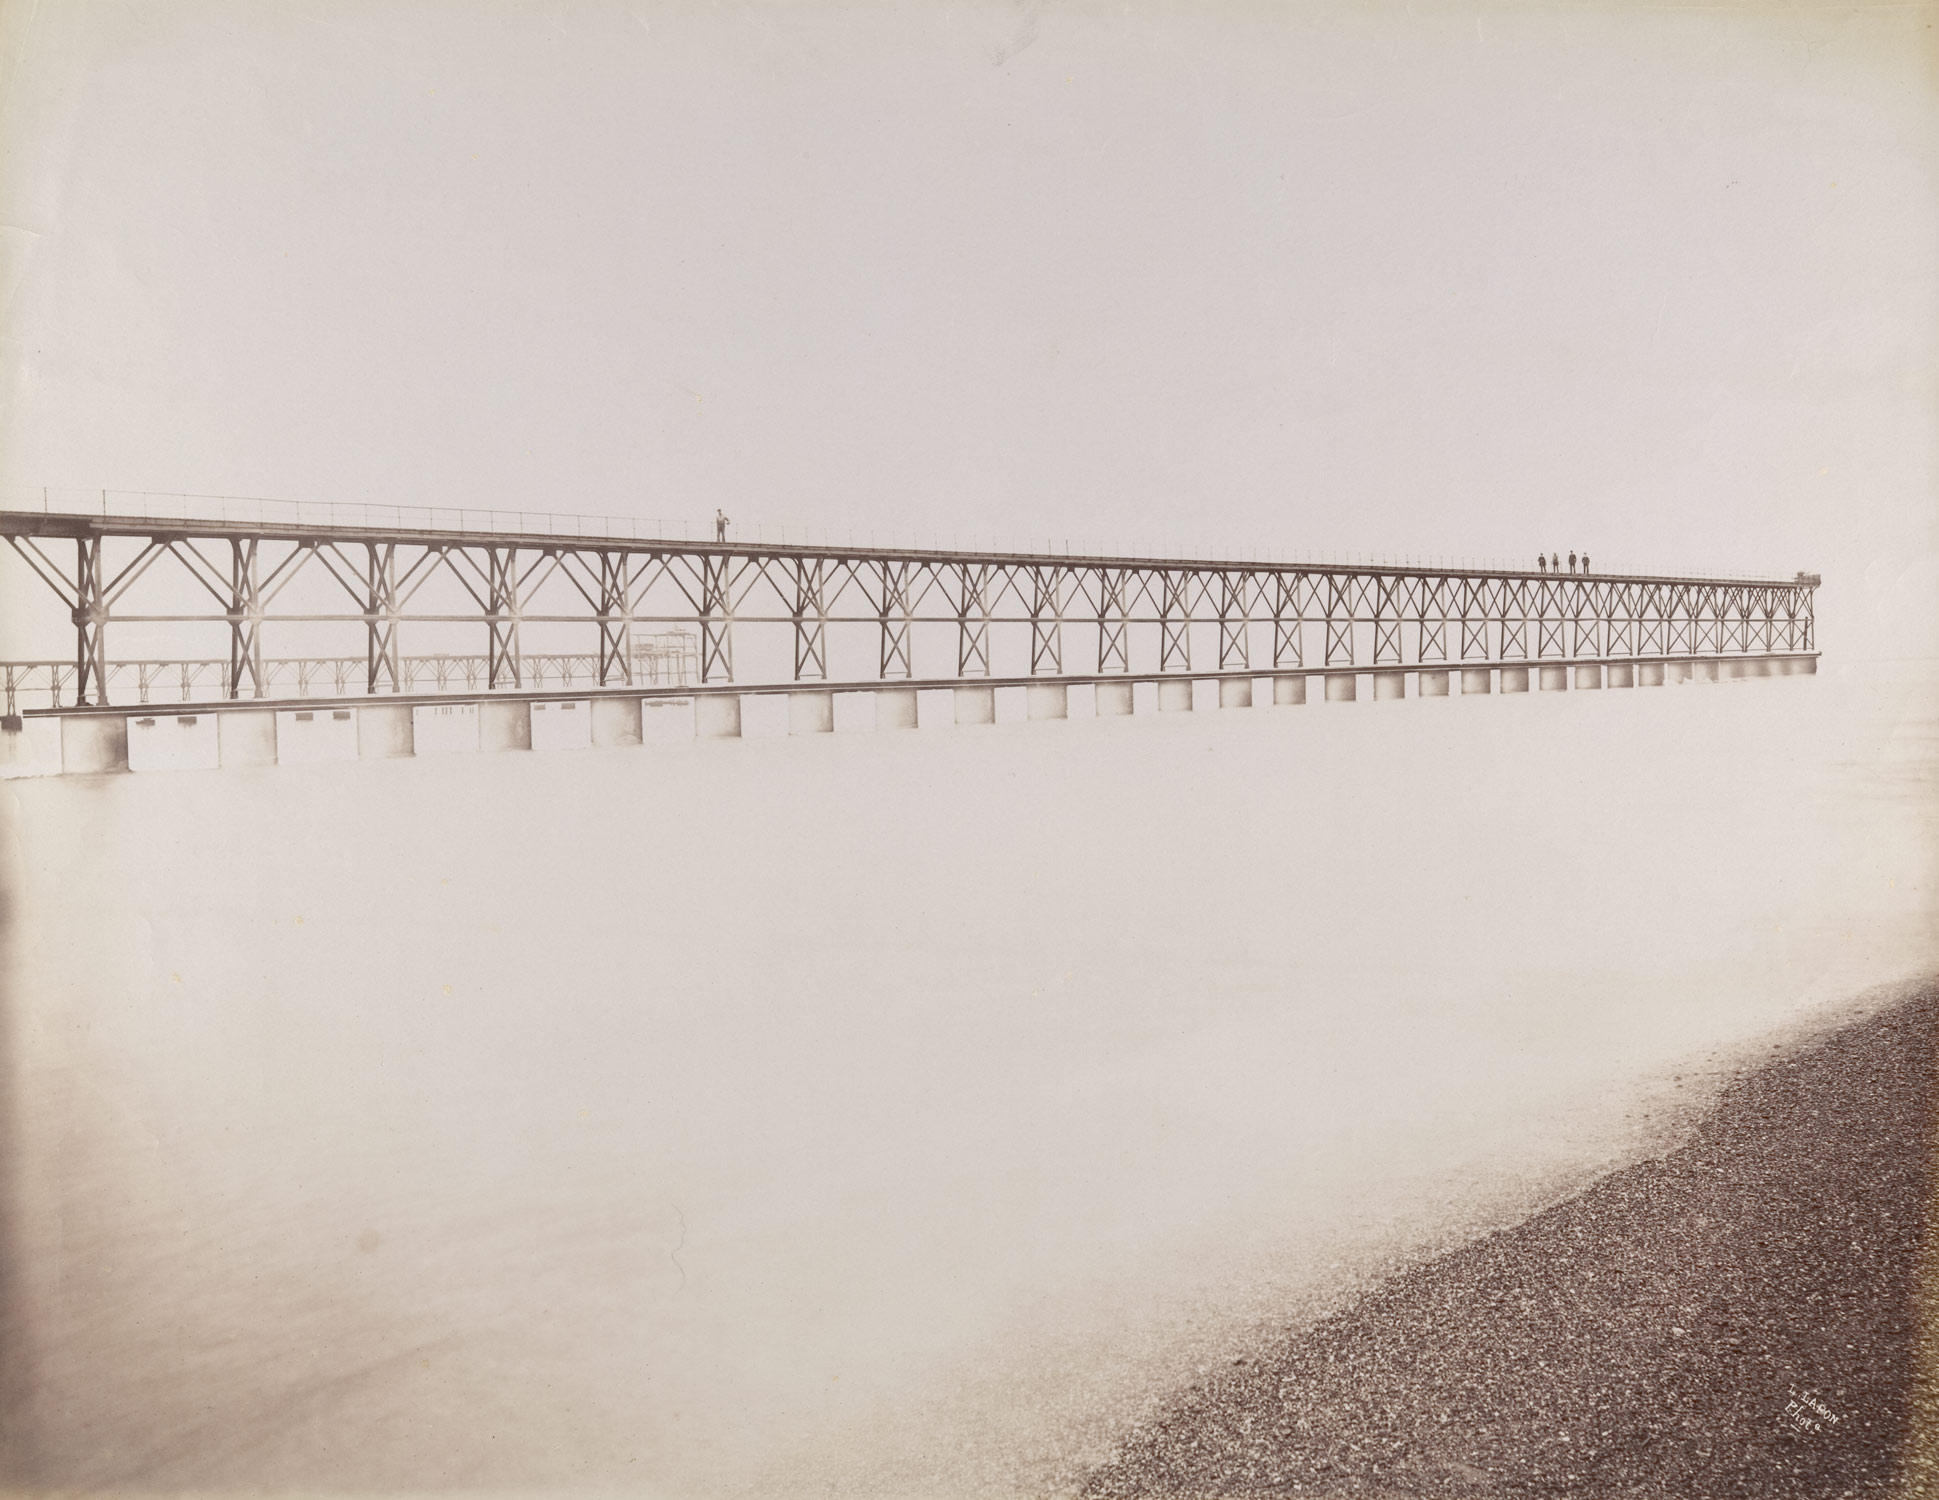 Tubular Jetty, Mouth of the Adour, Port of Bayonne